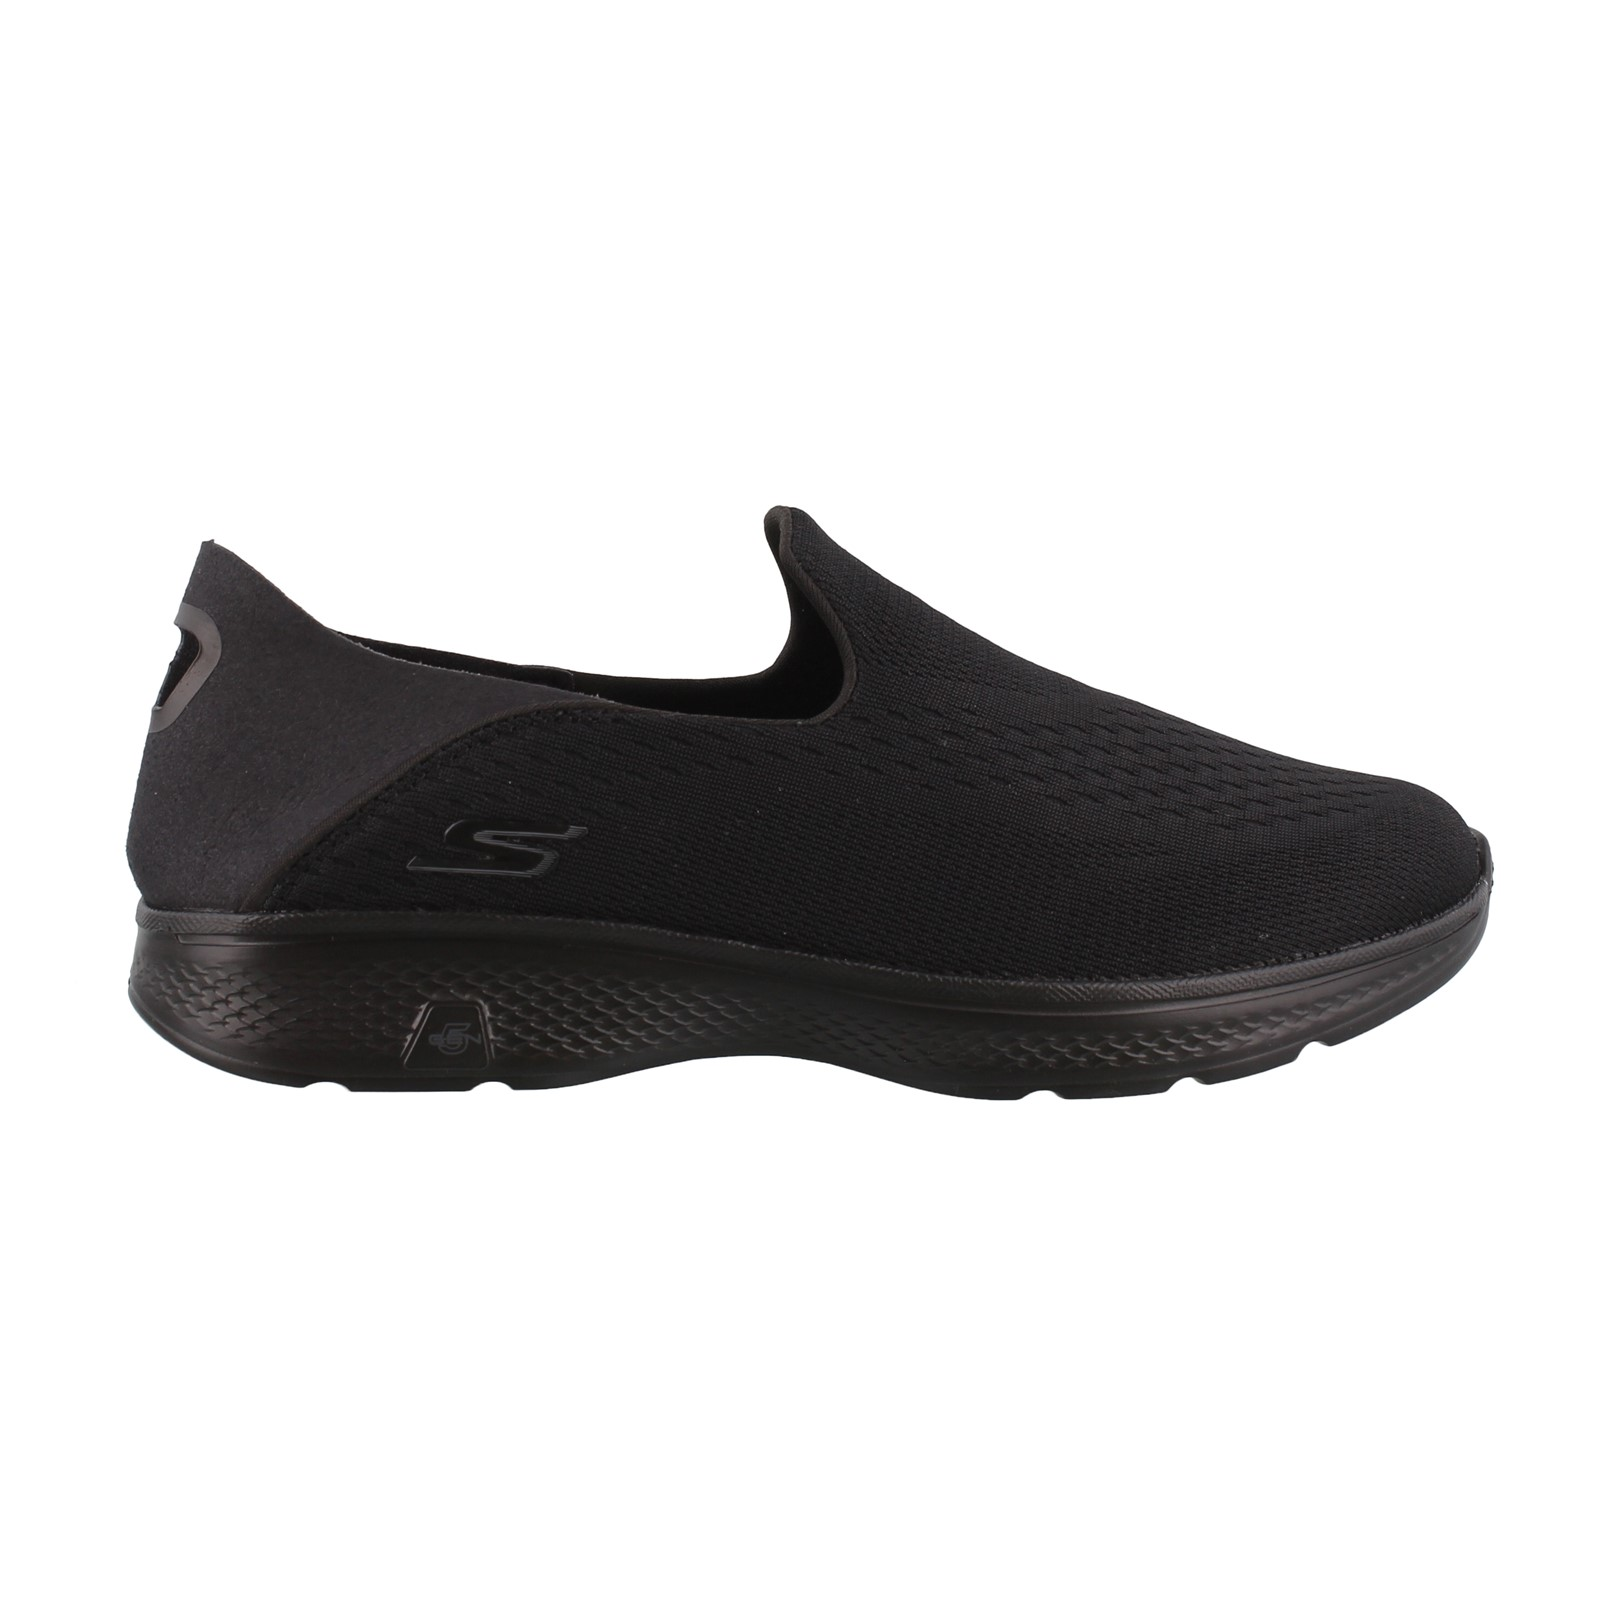 Men's Skechers Performance, Go Walk 4 Convertible Slip on Shoes